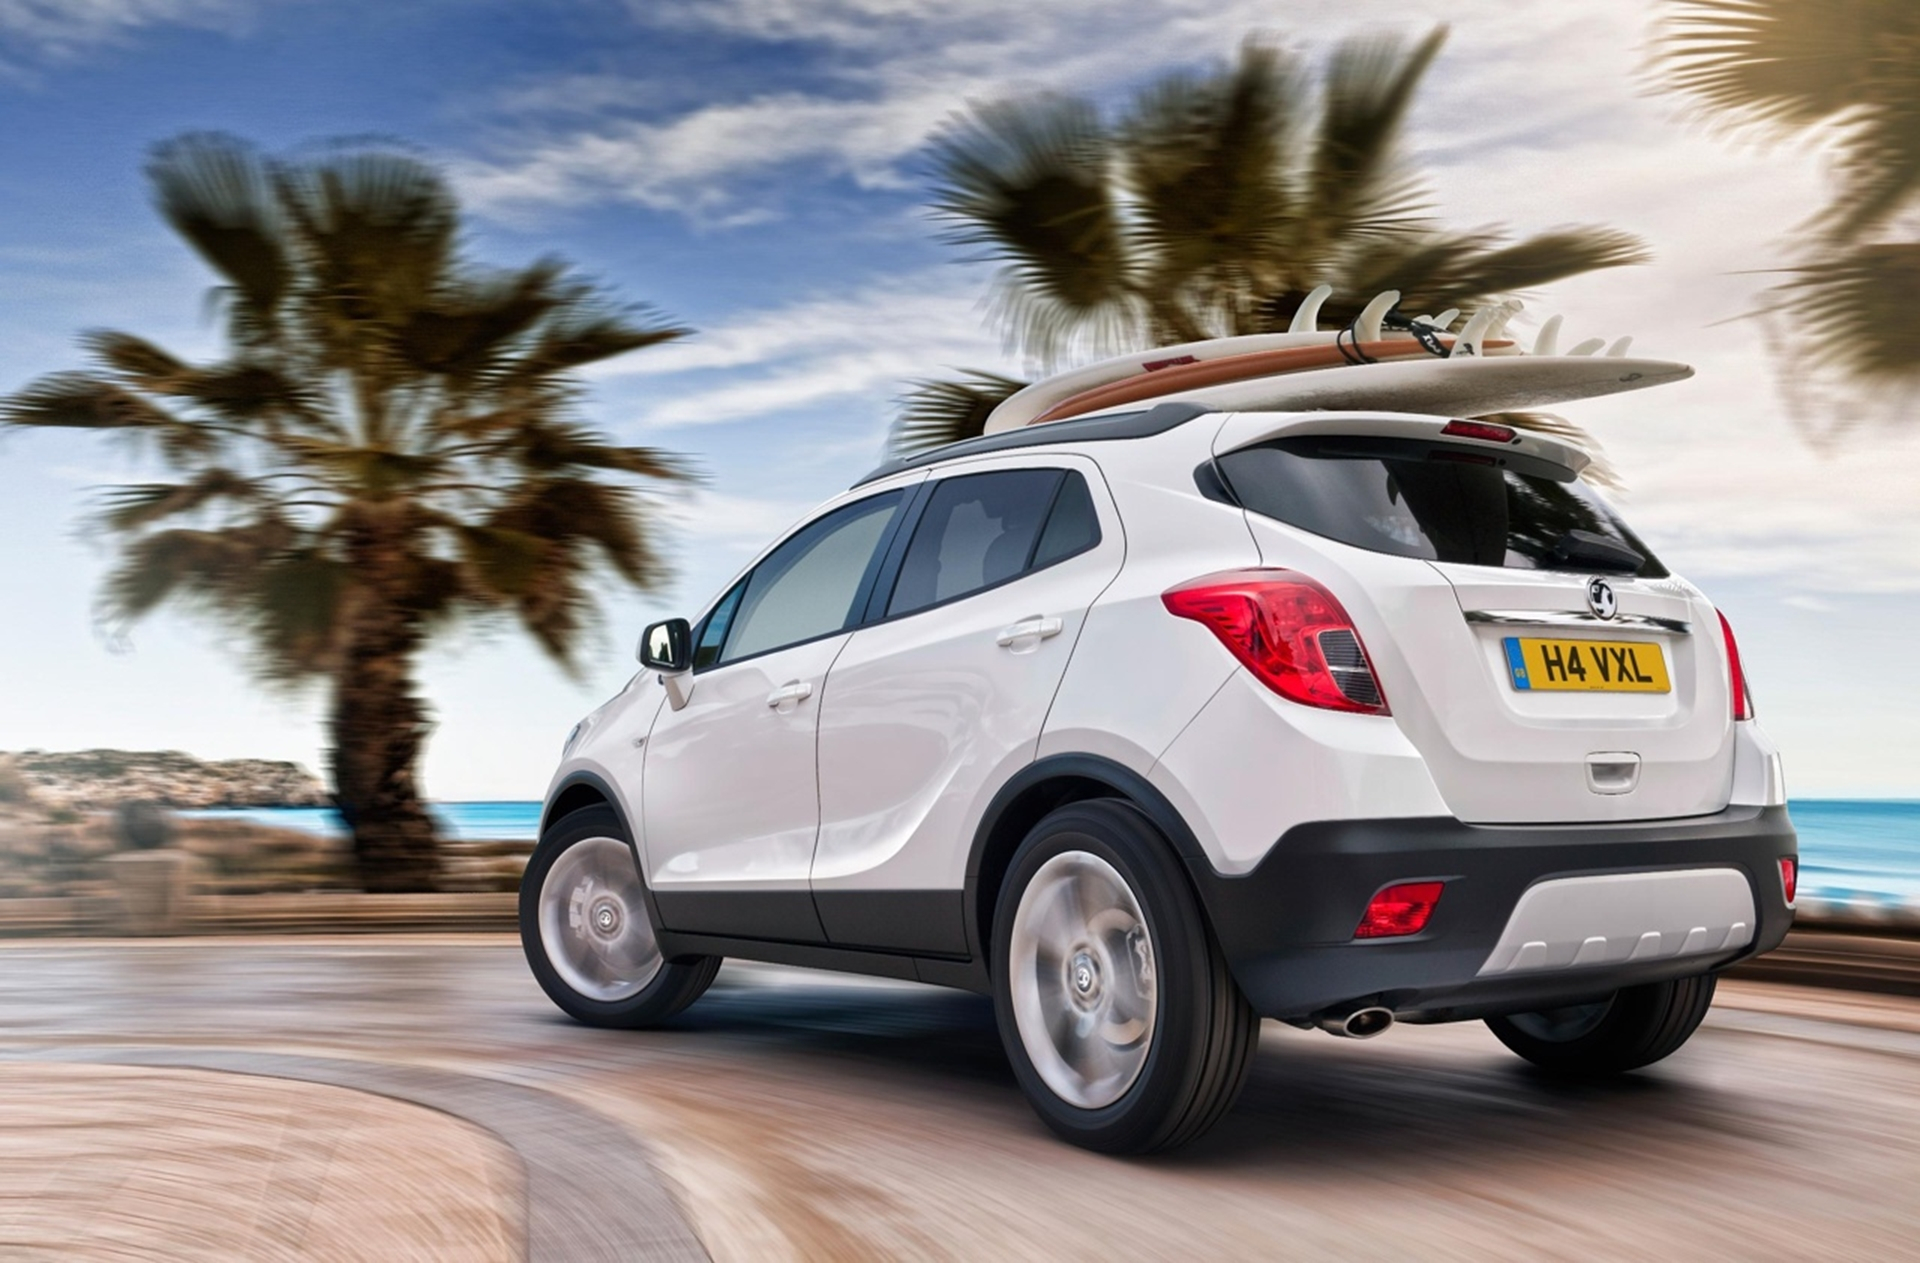 Luton – Hot on the heels of Vauxhall's recent pricing announcement ...